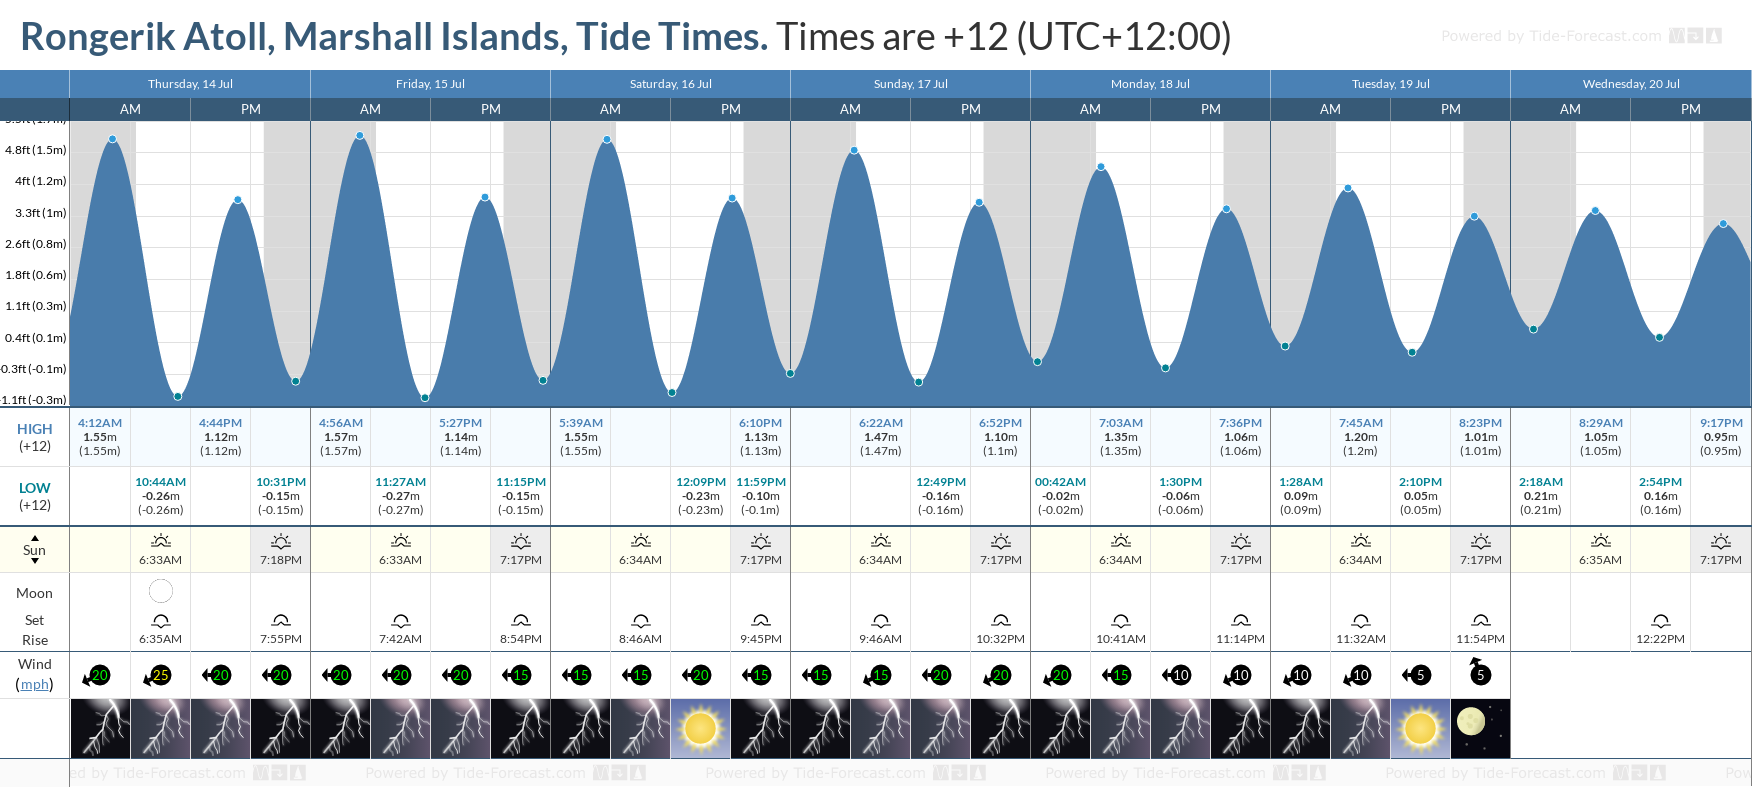 Rongerik Atoll, Marshall Islands Tide Chart including high and low tide tide times for the next 7 days